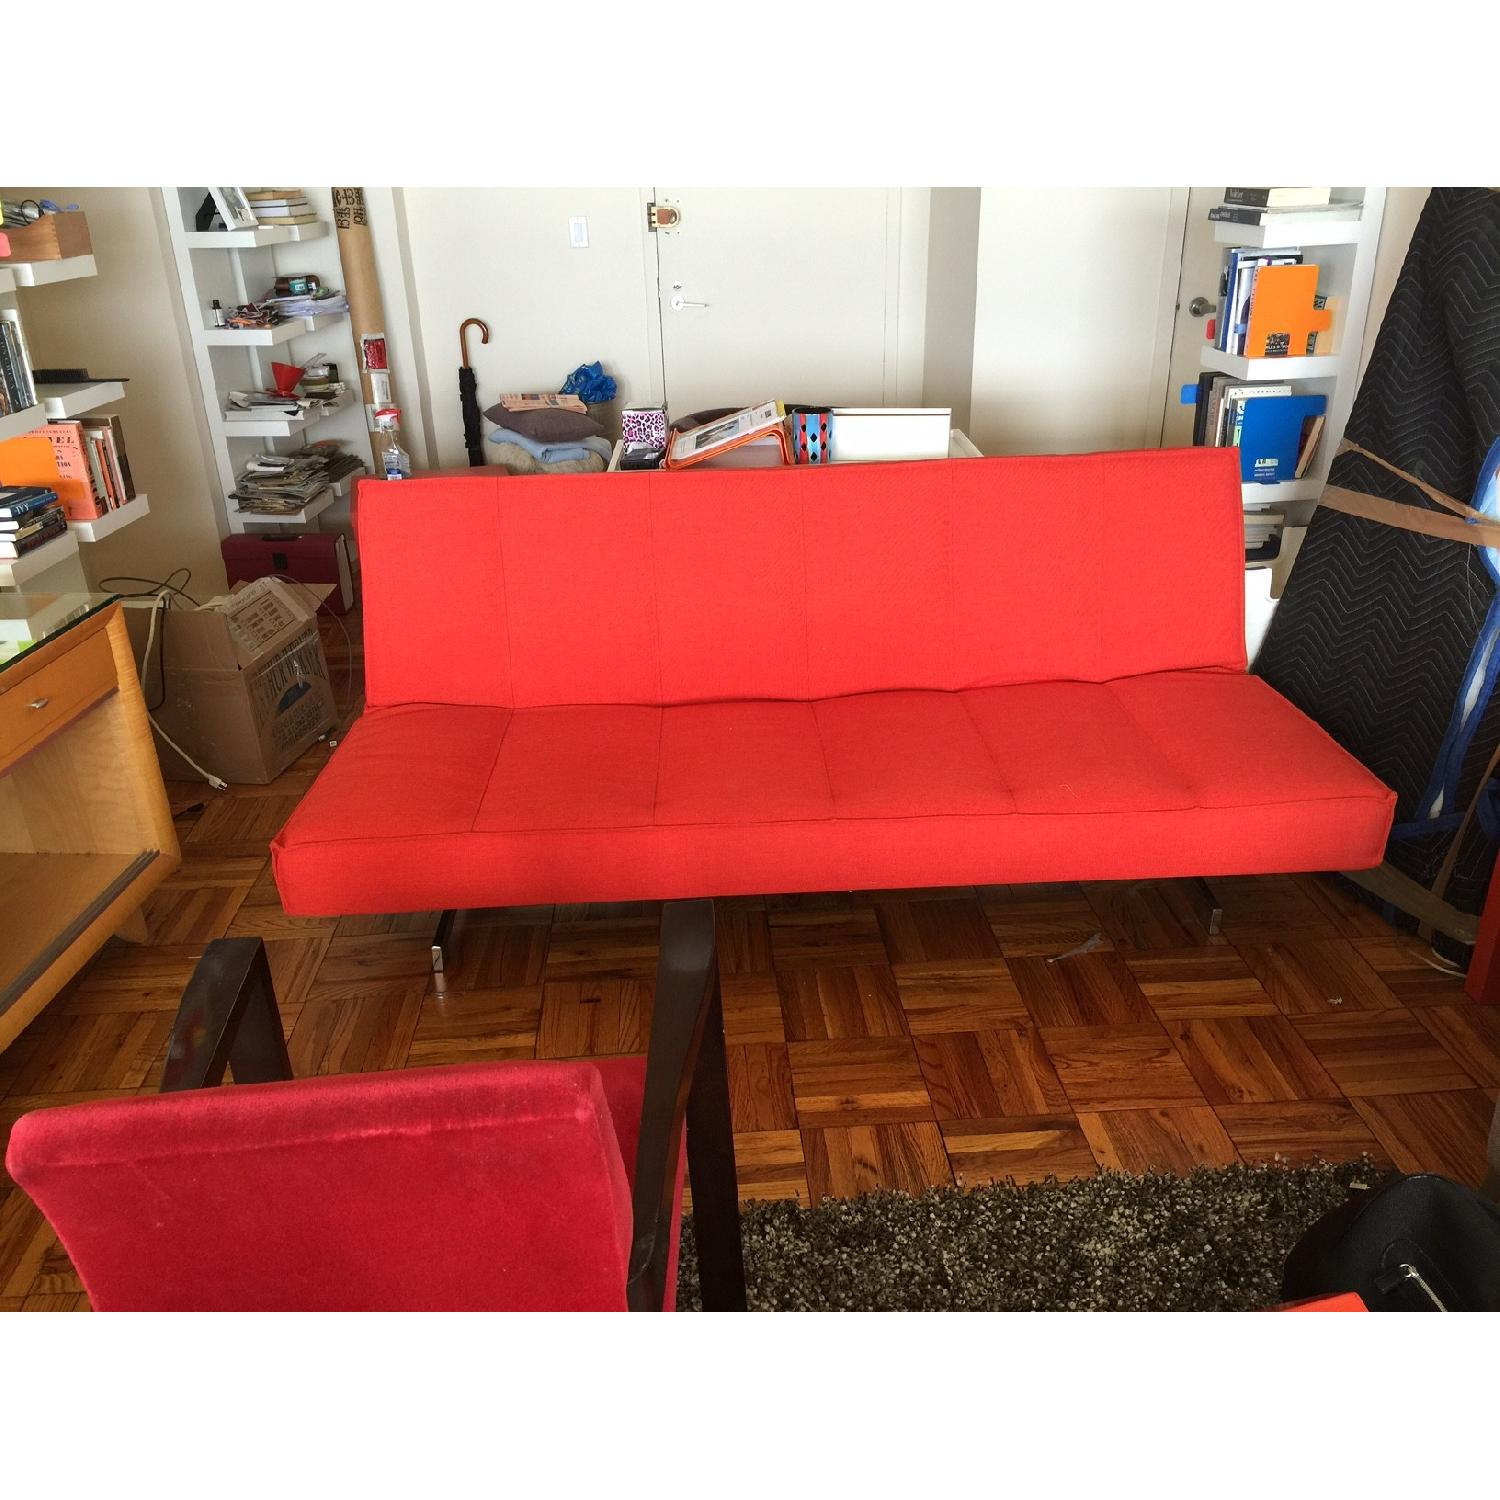 Red Fold Down Sofa Bed - image-1